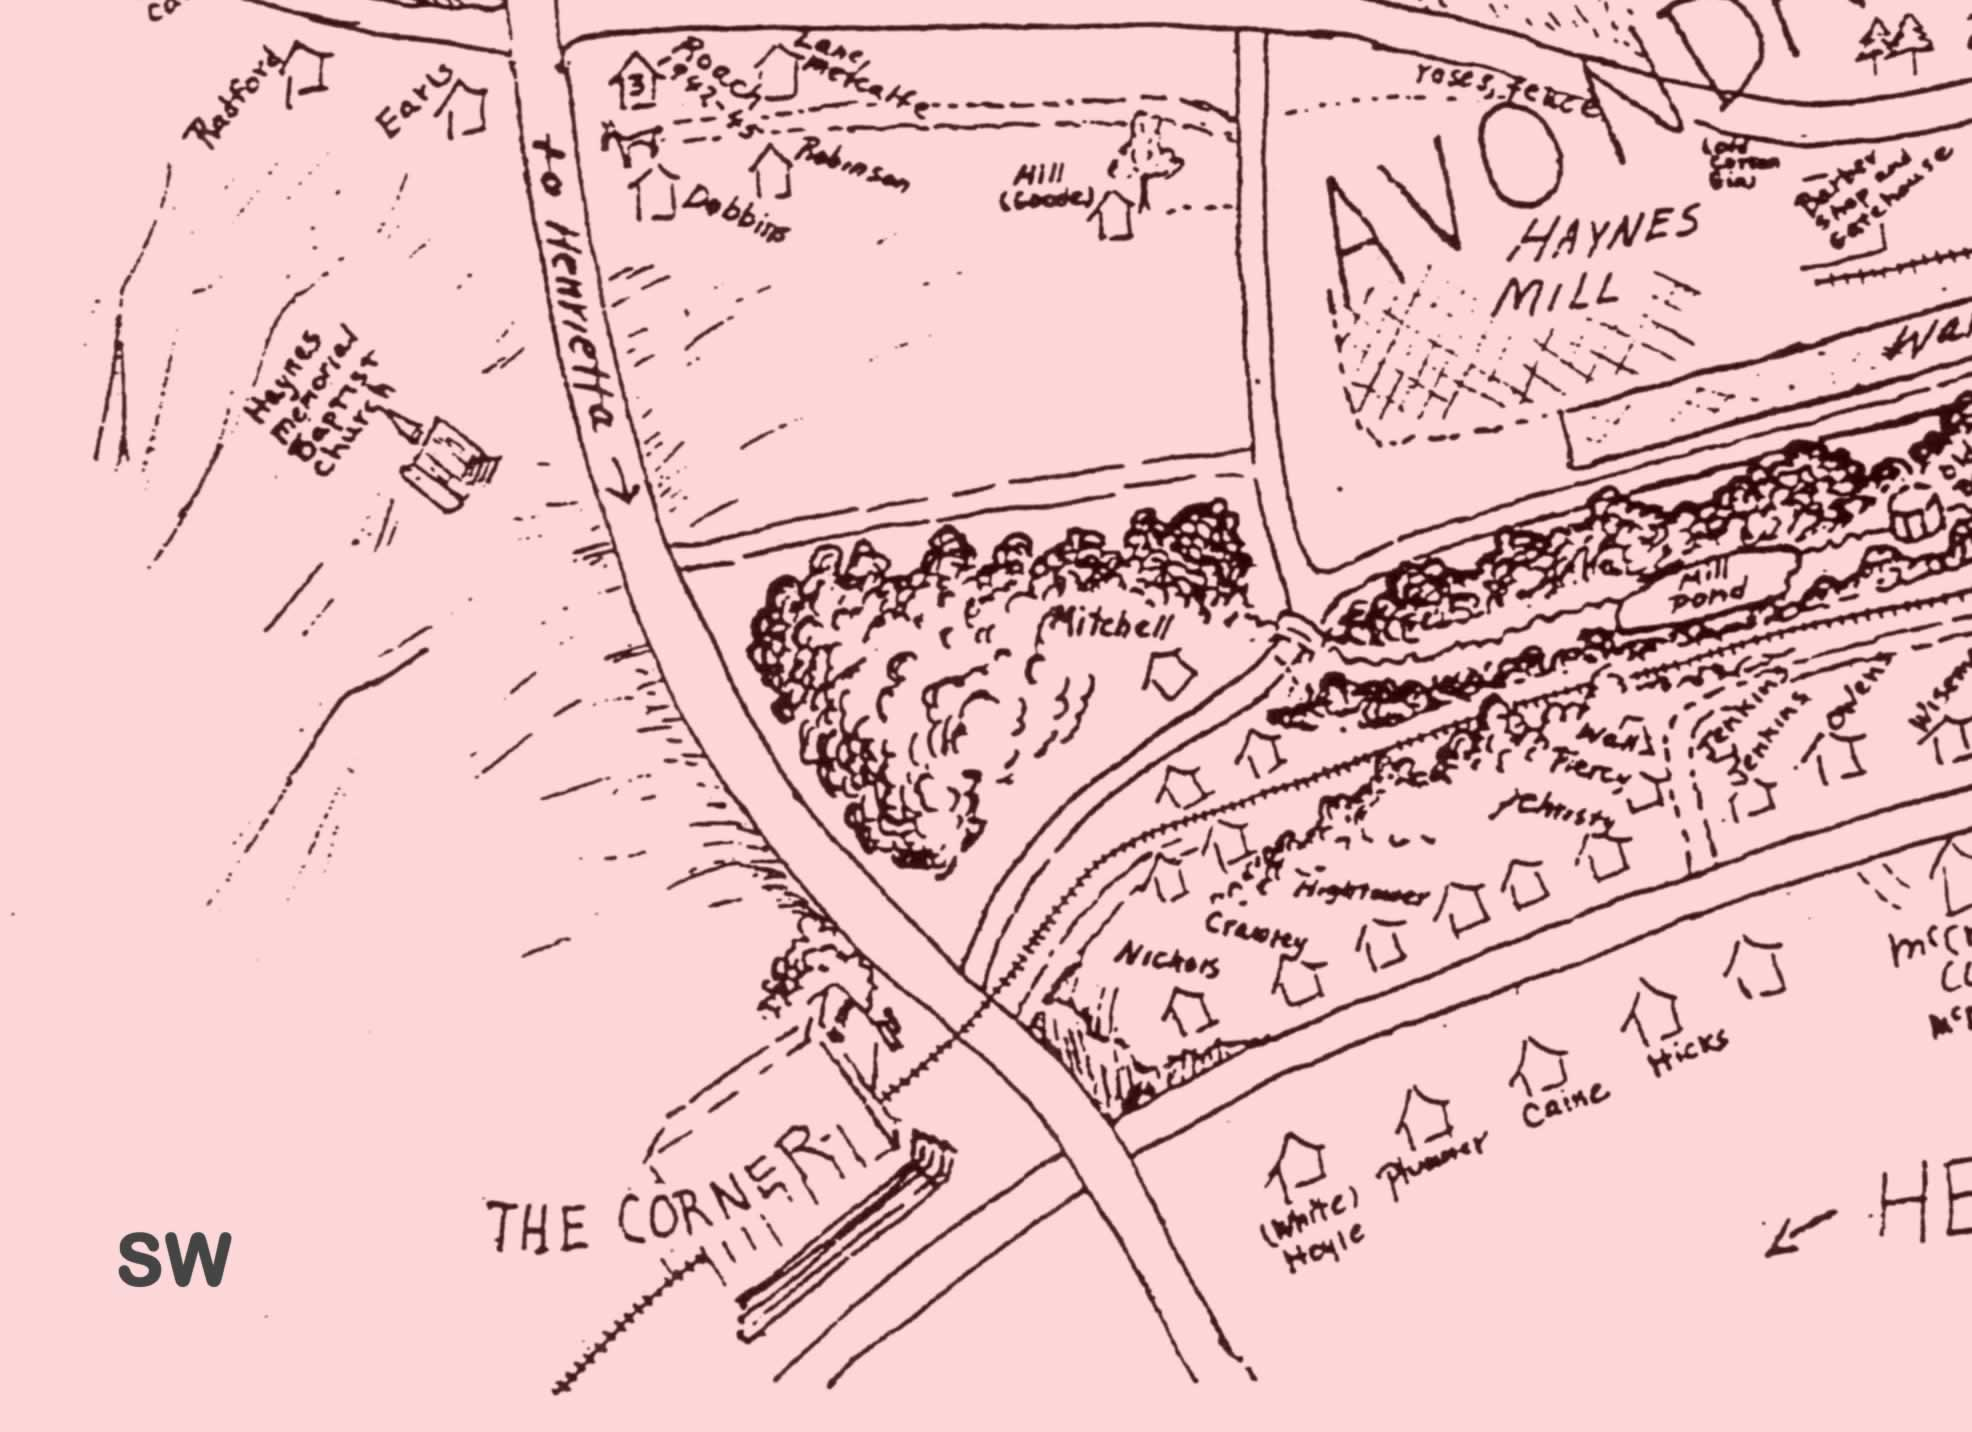 The southwestern quadrant of the map